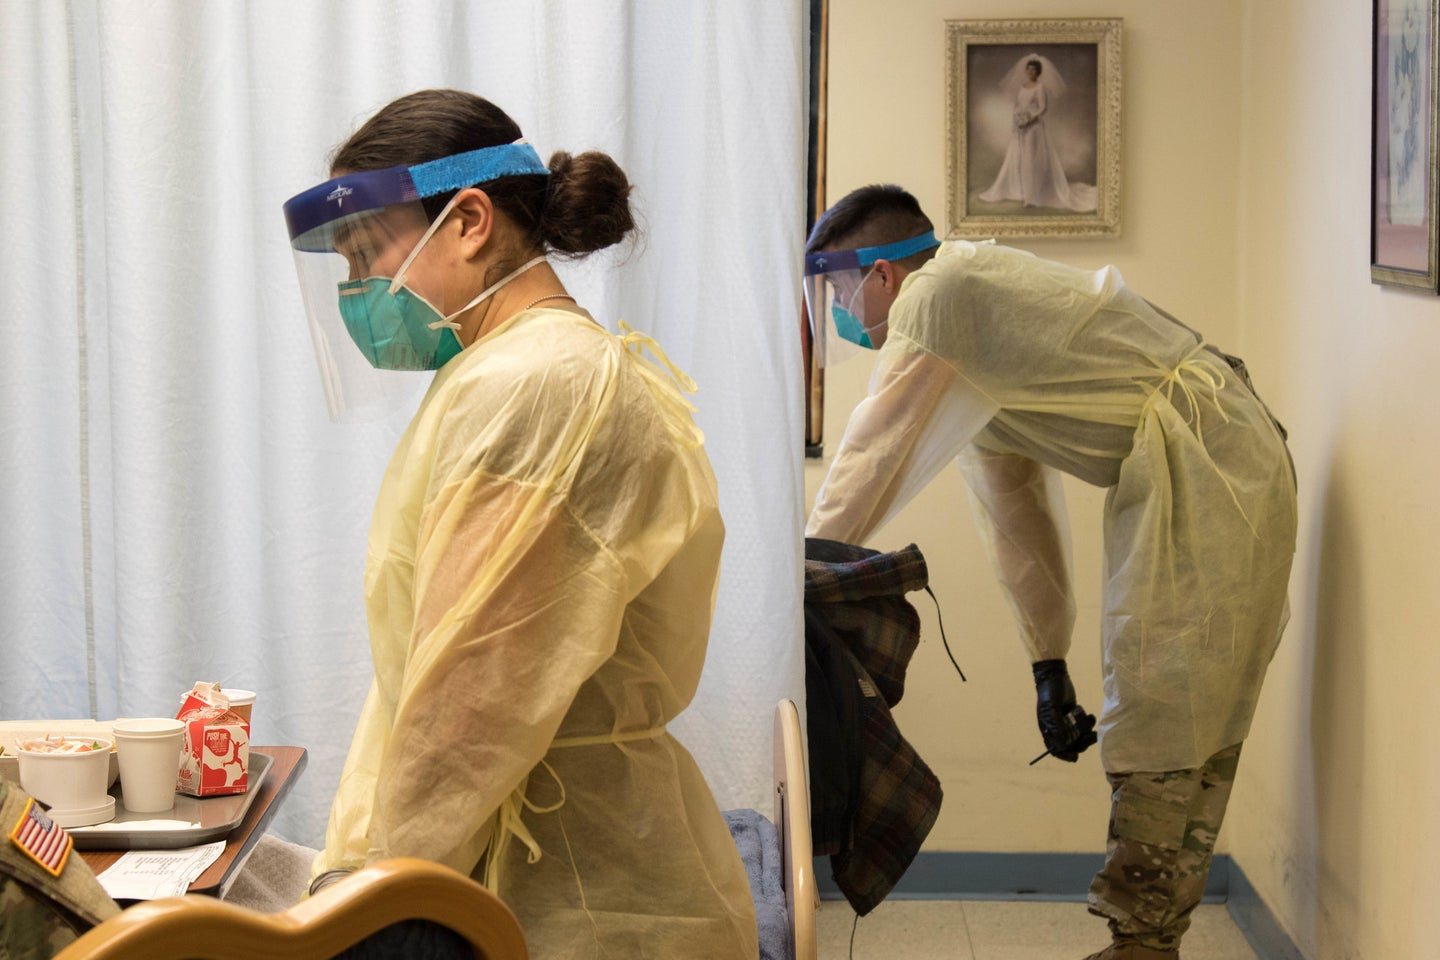 two people in protective gear stand by hospital beds